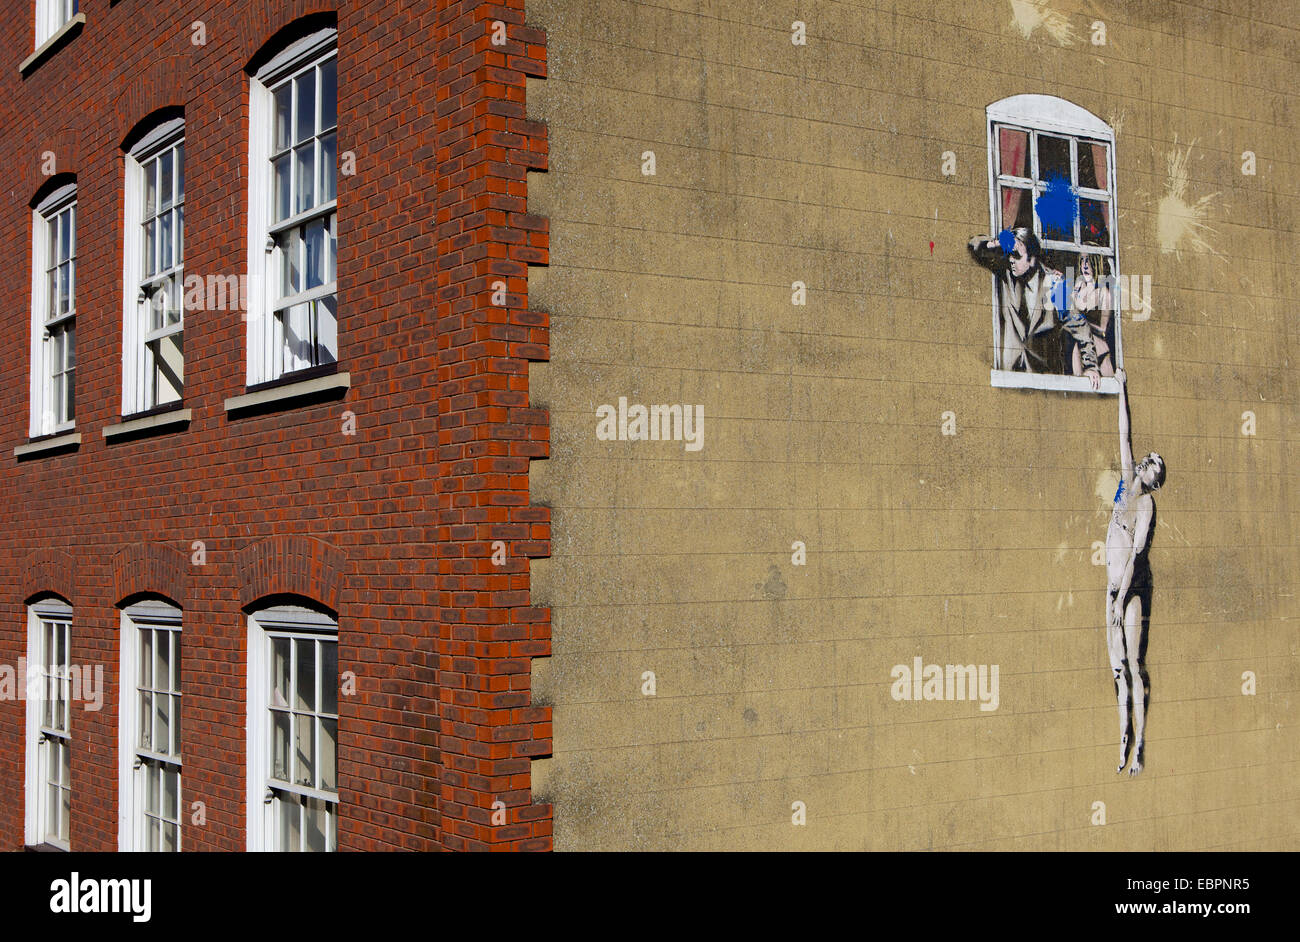 Adultery street art by the graffiti artist Banksy on Park Street in Bristol, England, United Kingdom, Europe - Stock Image